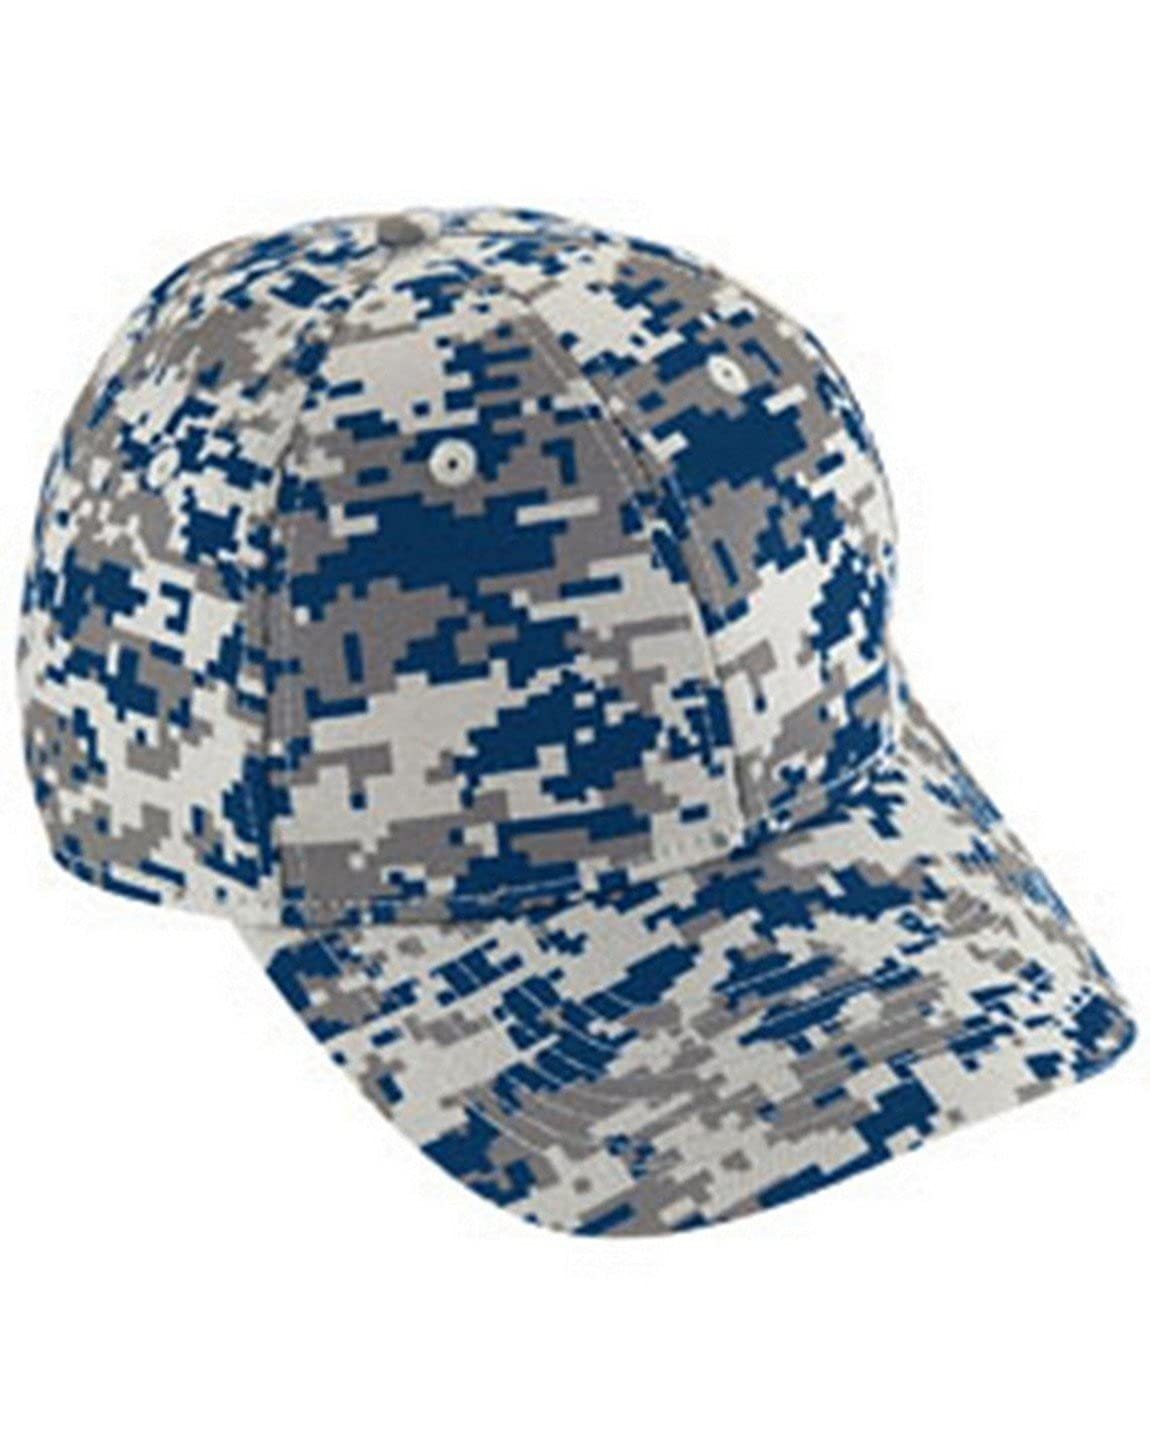 Digi Camo Cotton Twill Cap Augusta Sportswear OS Black Digi (US) Augusta Drop Ship 6208